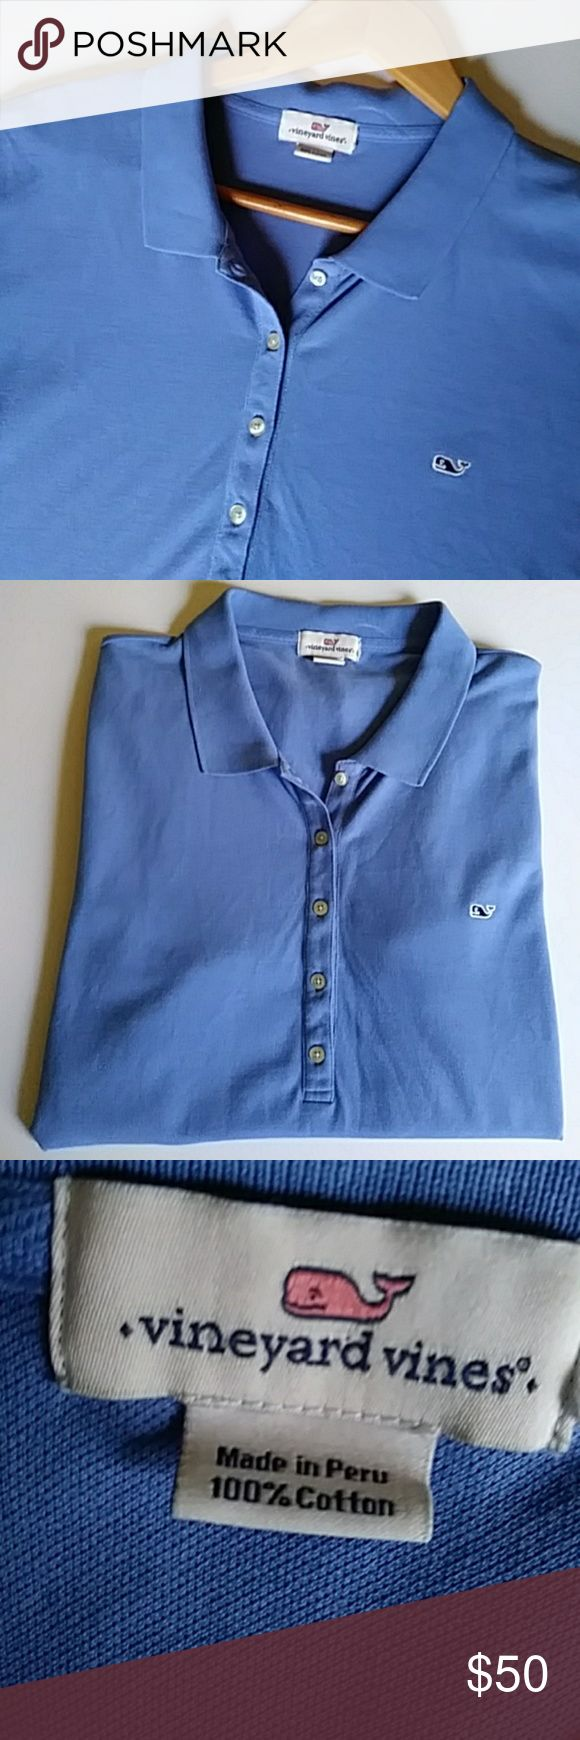 SALE VINEYARD VINES Classic Polo Shirt Classic preppy polo style short-sleeve top by VINEYARD VINES. In very good condition gently worn. Perfect for a day at the beach, on the boat or at the golf course, etc. The size tag is cut out so check the measurements carefully with a similiar shirt you own: Chest (underarm to underarm) 21.5 inches, Length (shoulder to hem) 25 inches. Any questions feel free to ask  Comes from a smoke free home. Bundle and $ave. FAST SHIPPING. ⭐⭐⭐⭐⭐Top-rated seller…